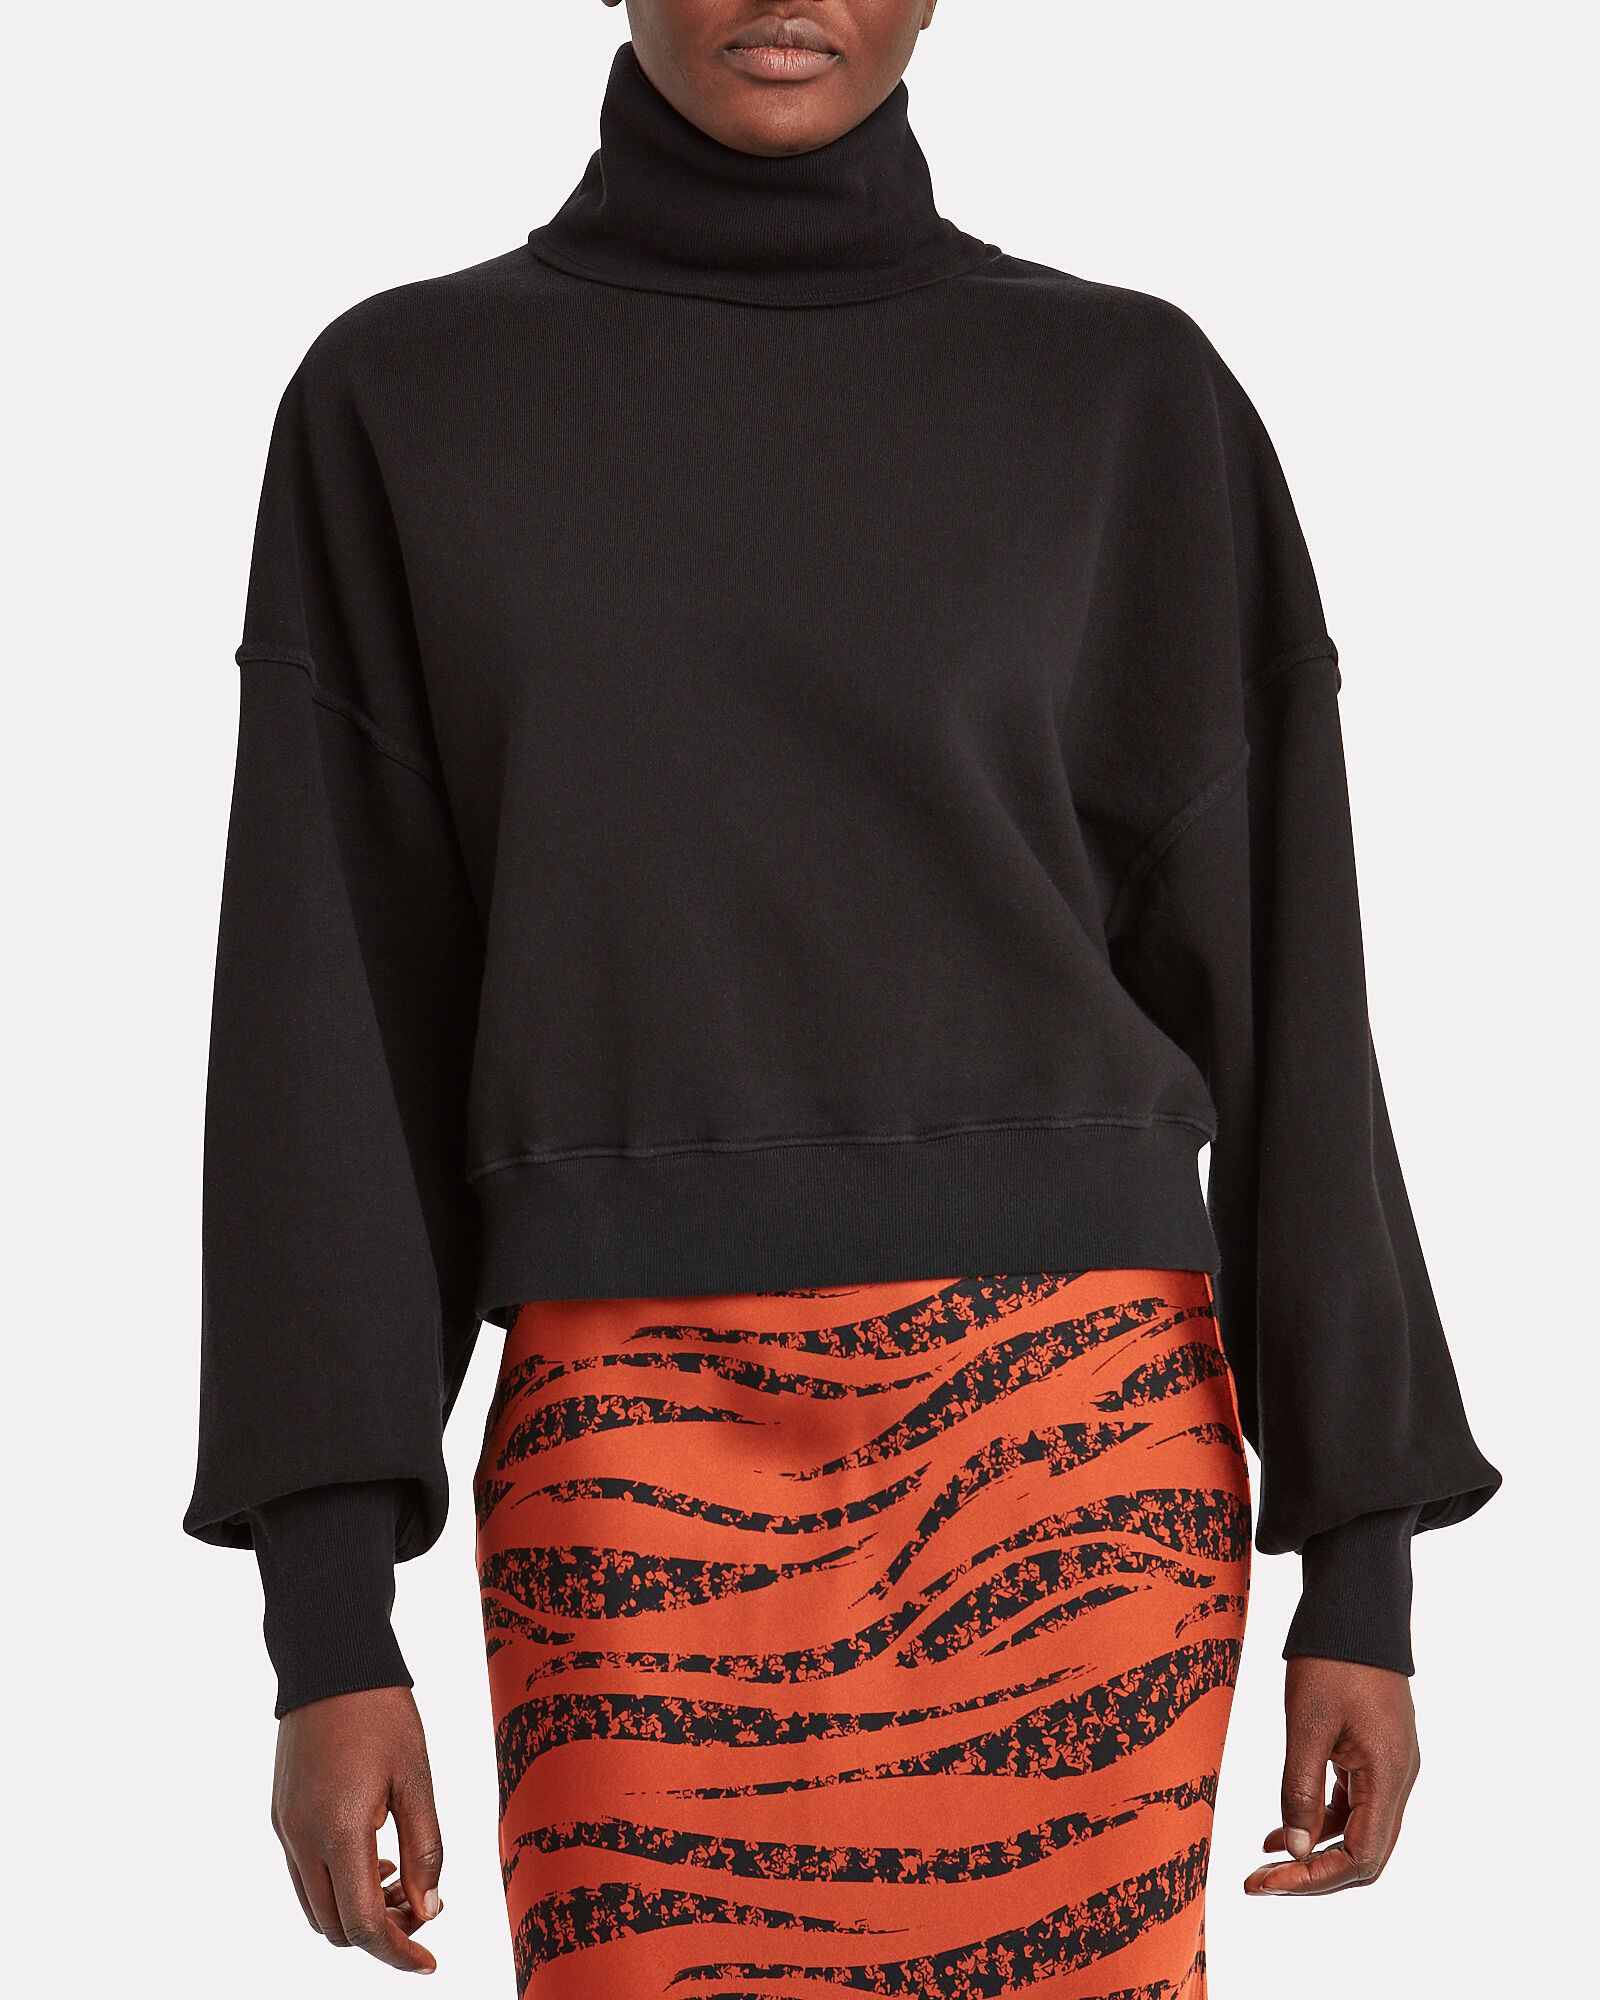 Balloon Sleeve Turtleneck Sweatshirt, BLACK, hi-res